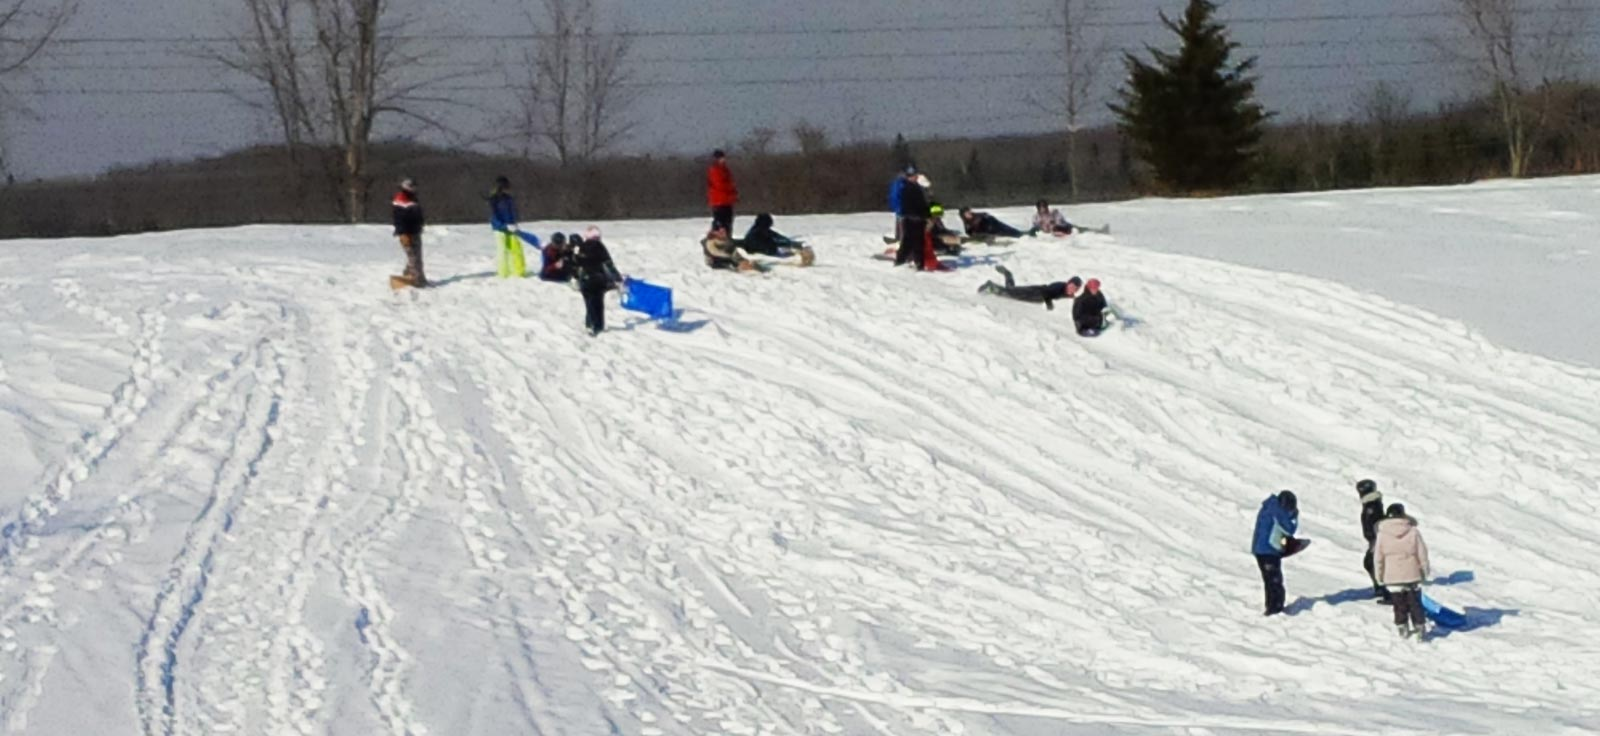 View of children tobogganing